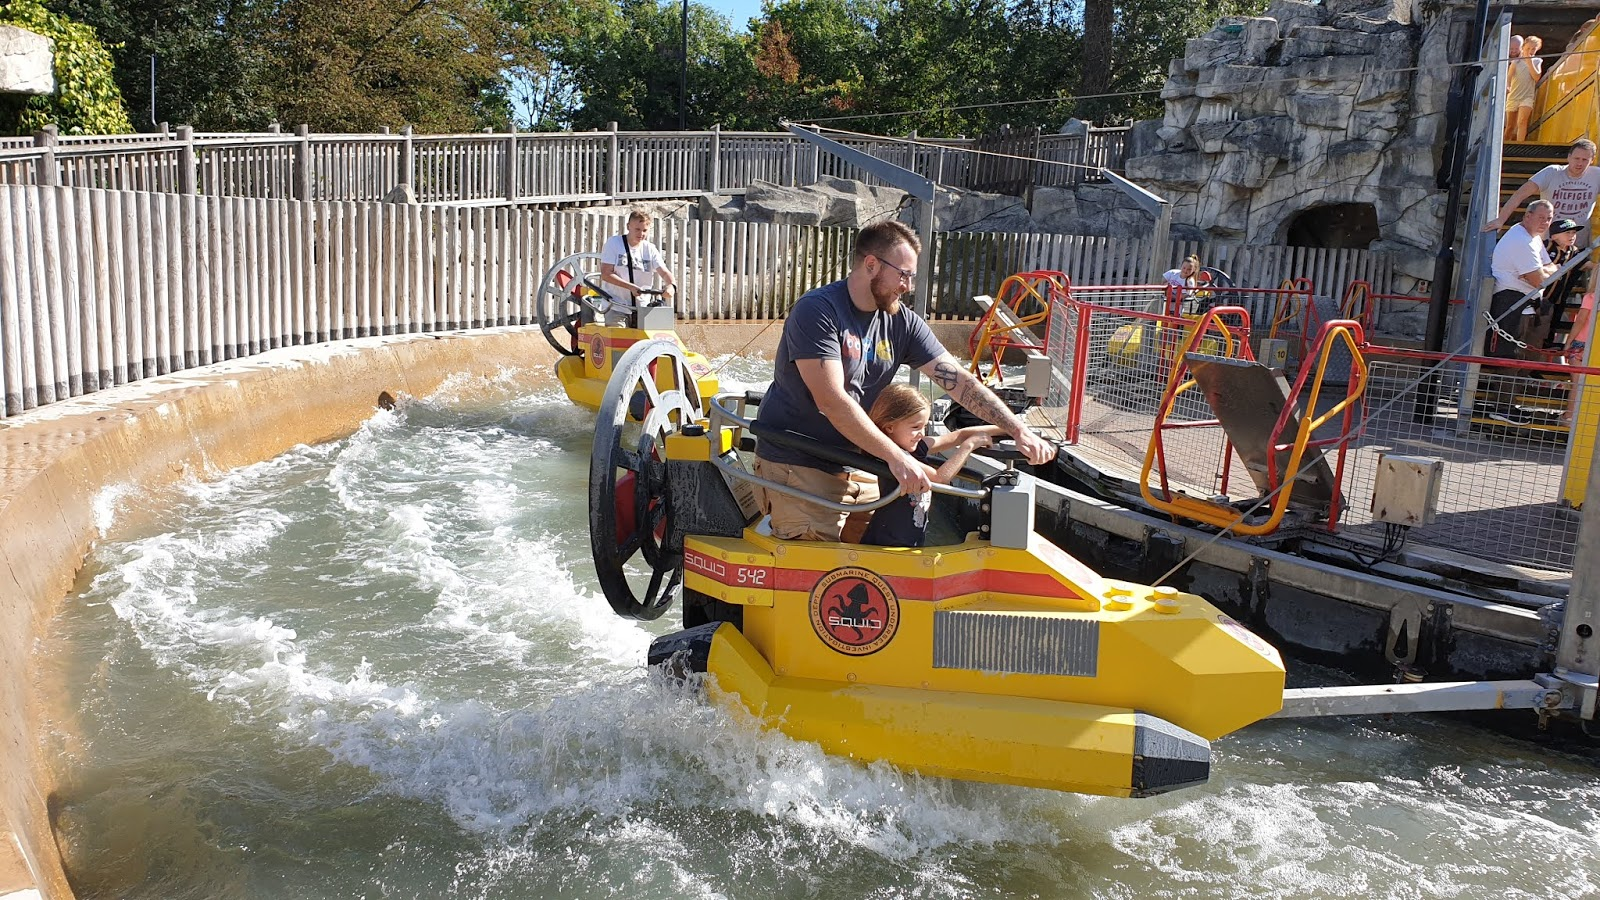 legoland windsor ride